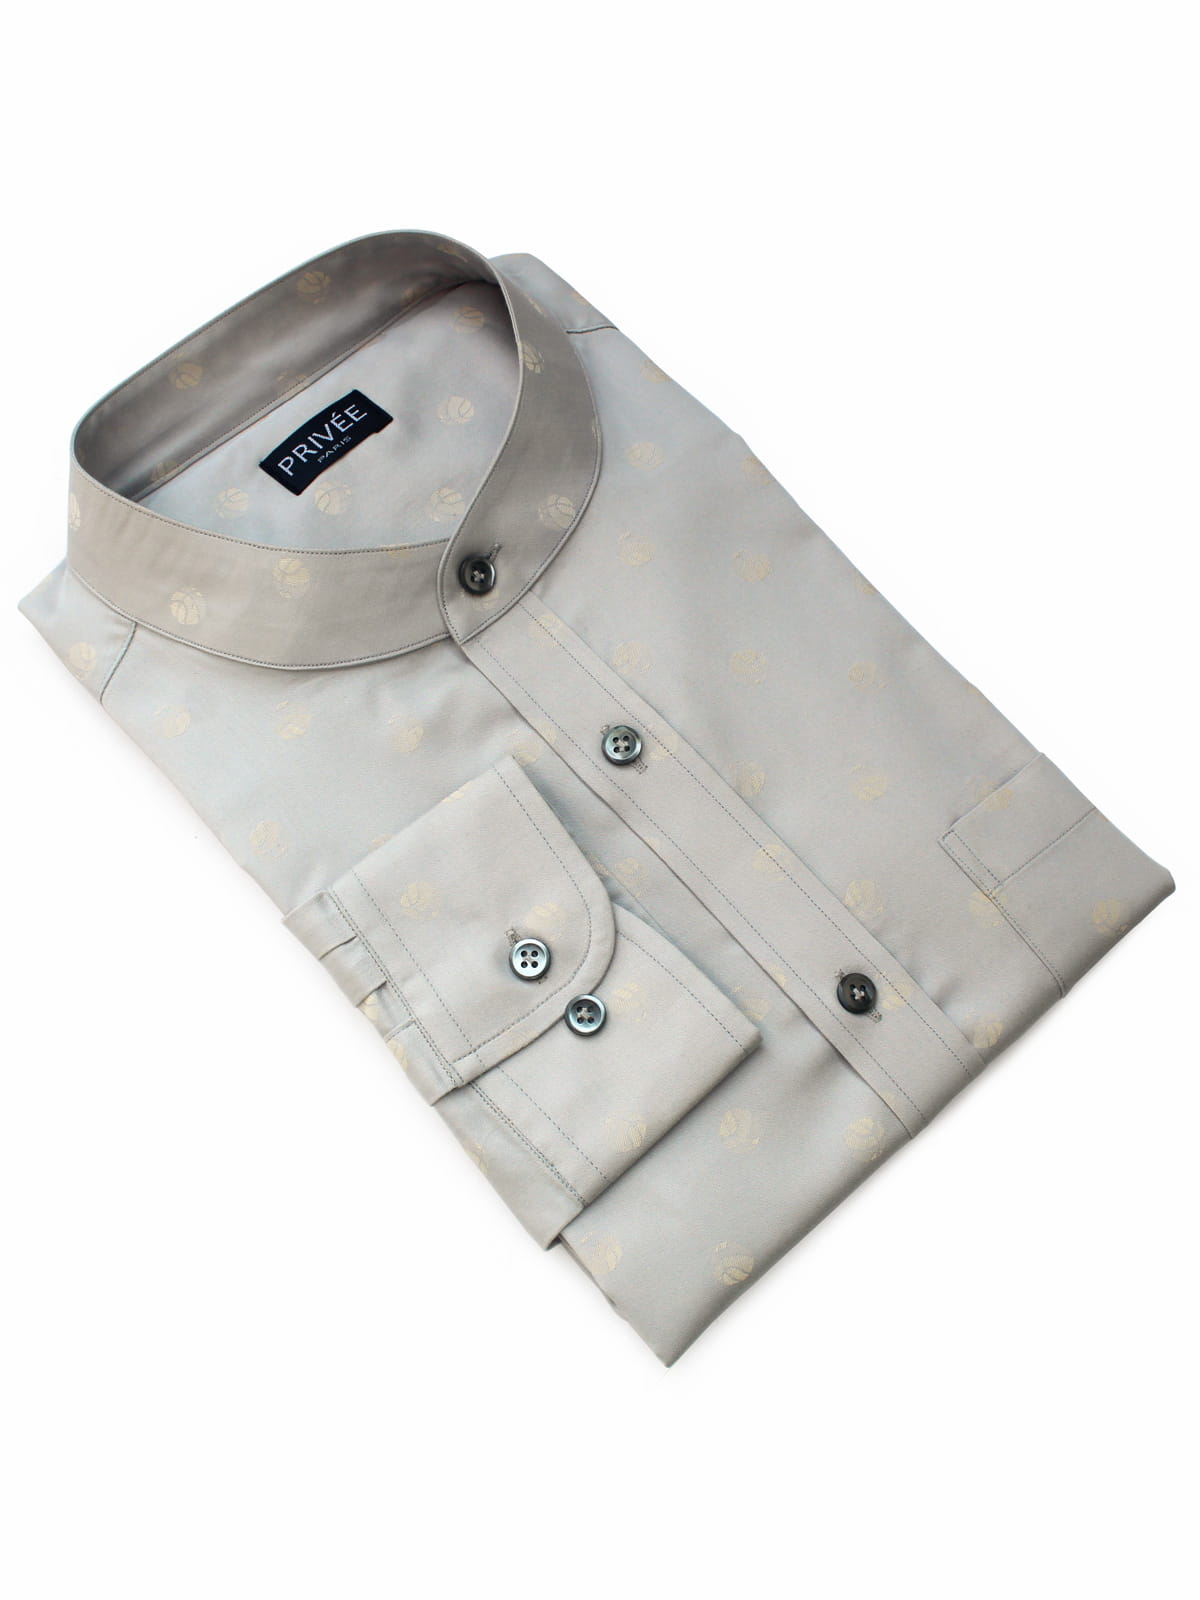 Privee Paris Luxury Shirts India